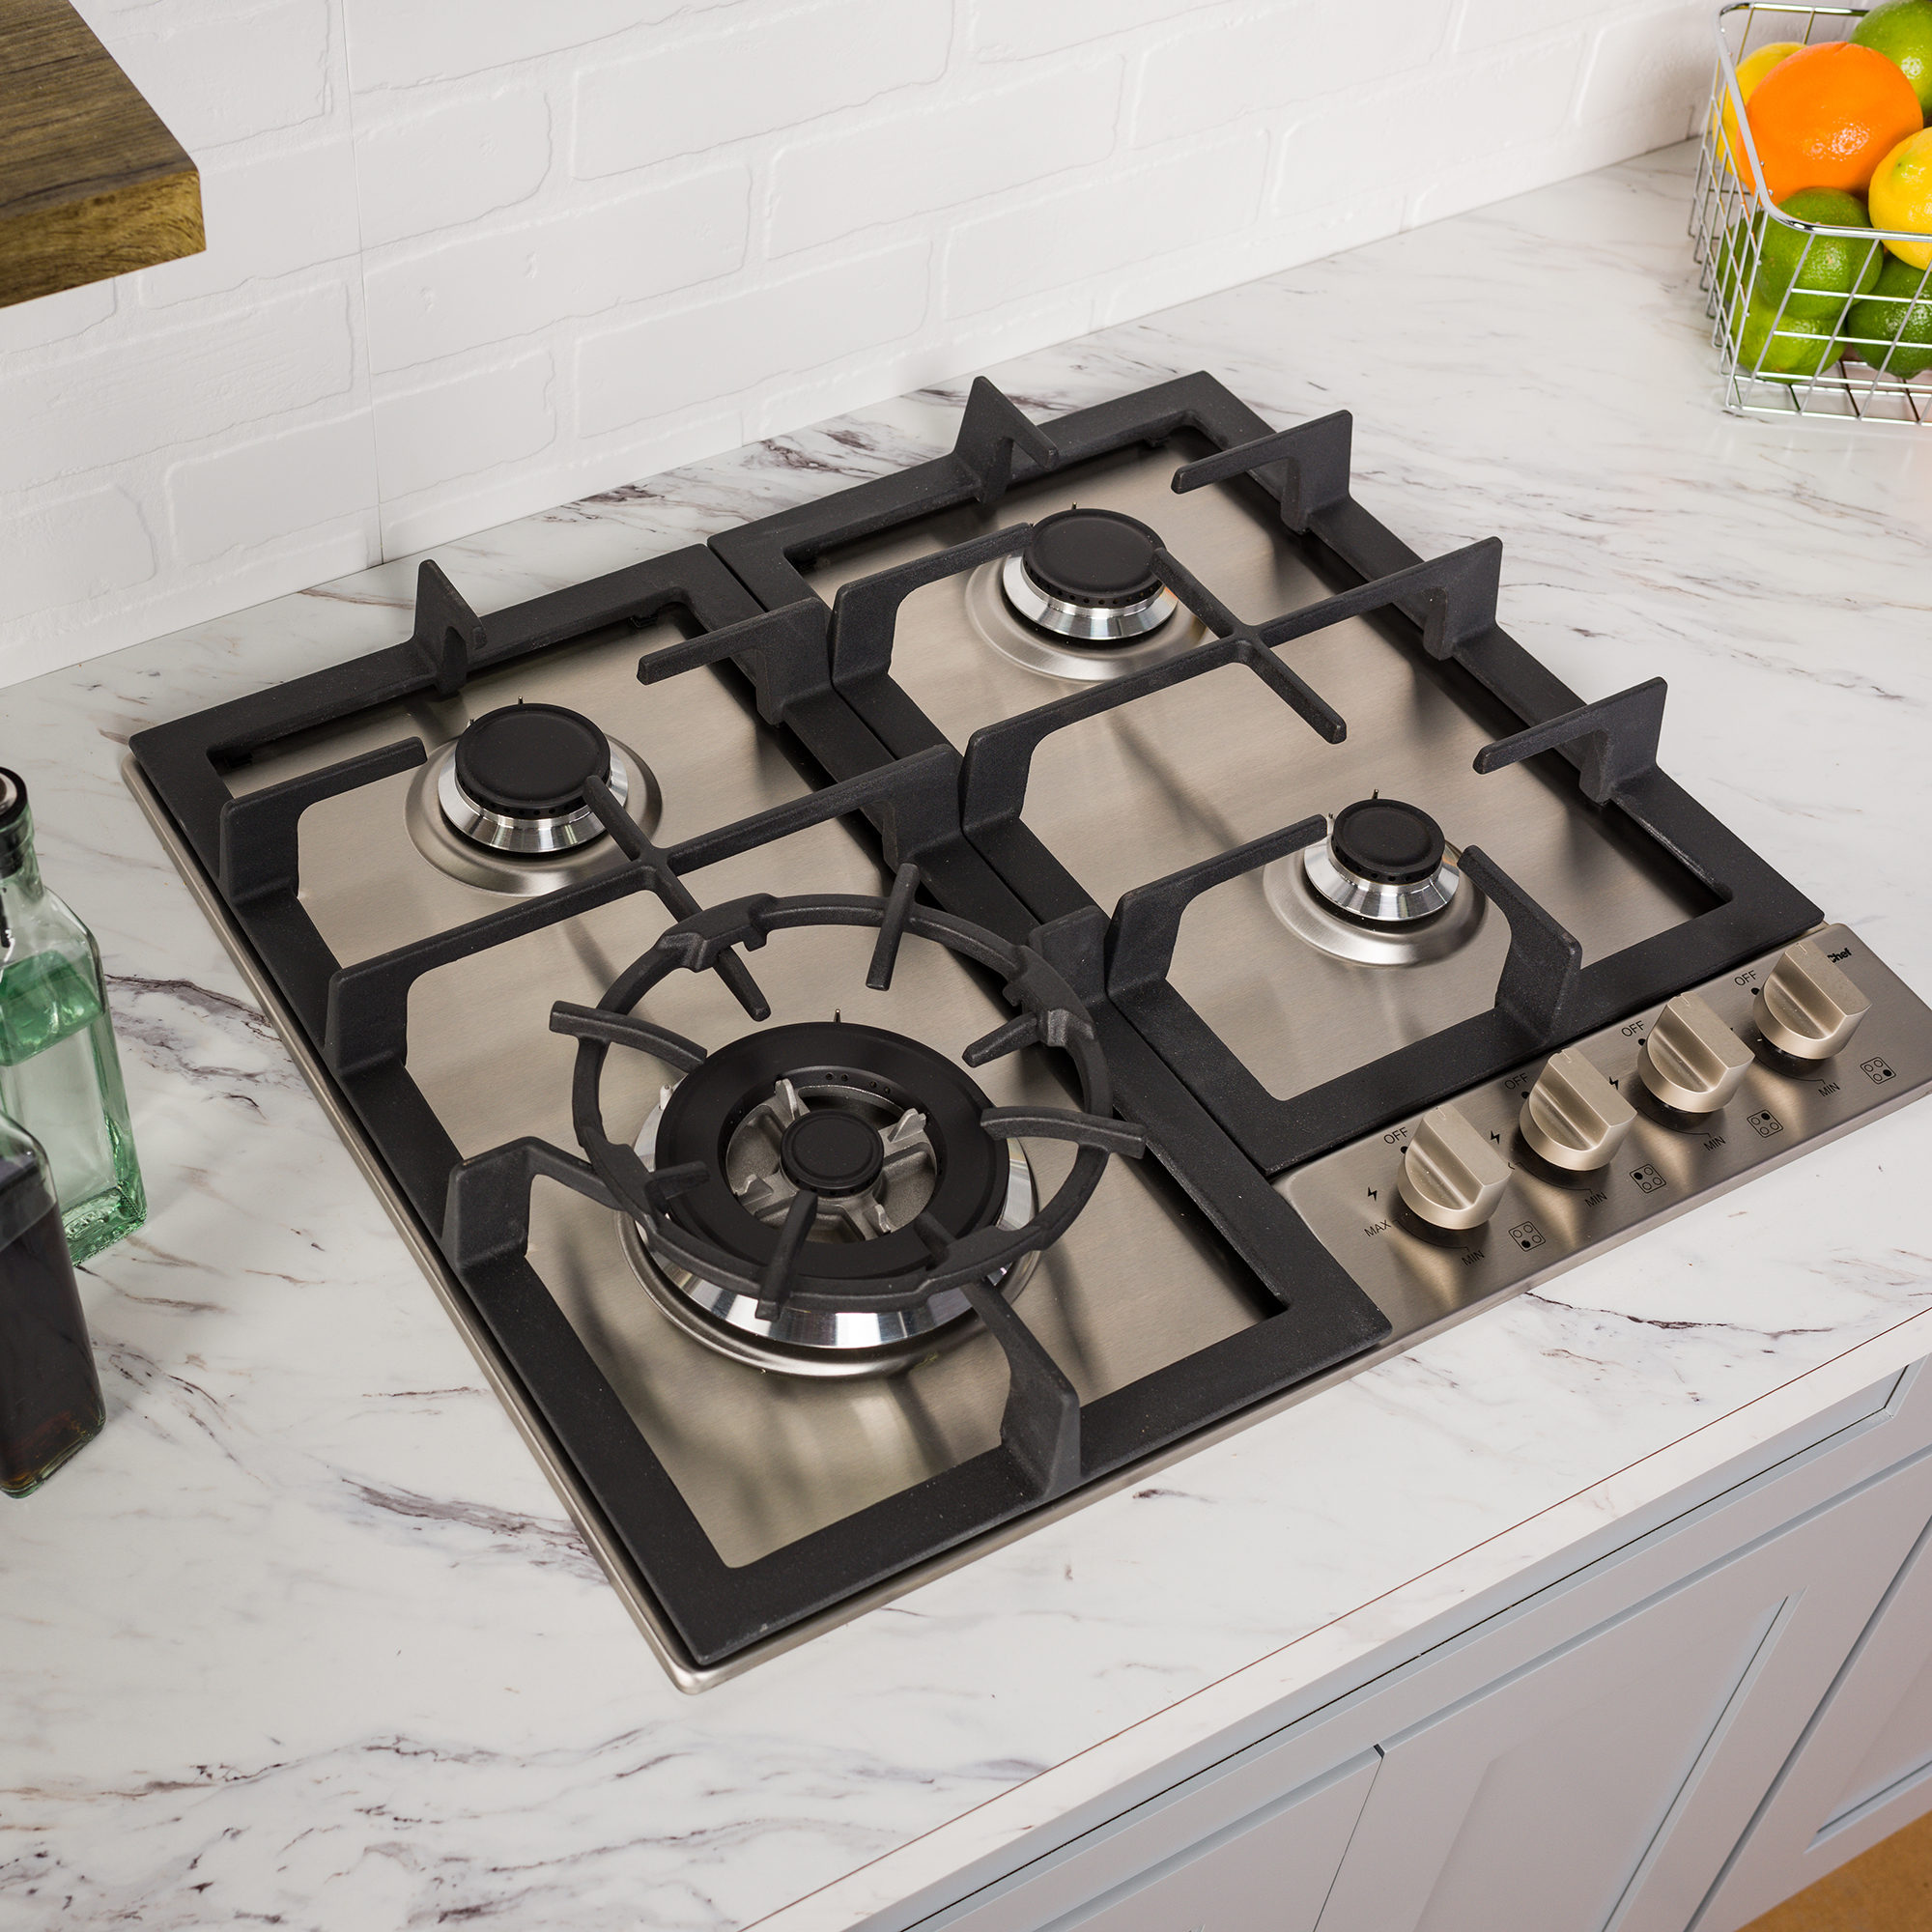 Stainless Steel Magic Chef 24 Built MCSCTG24S 24 Gas Cooktop with 4 Burners